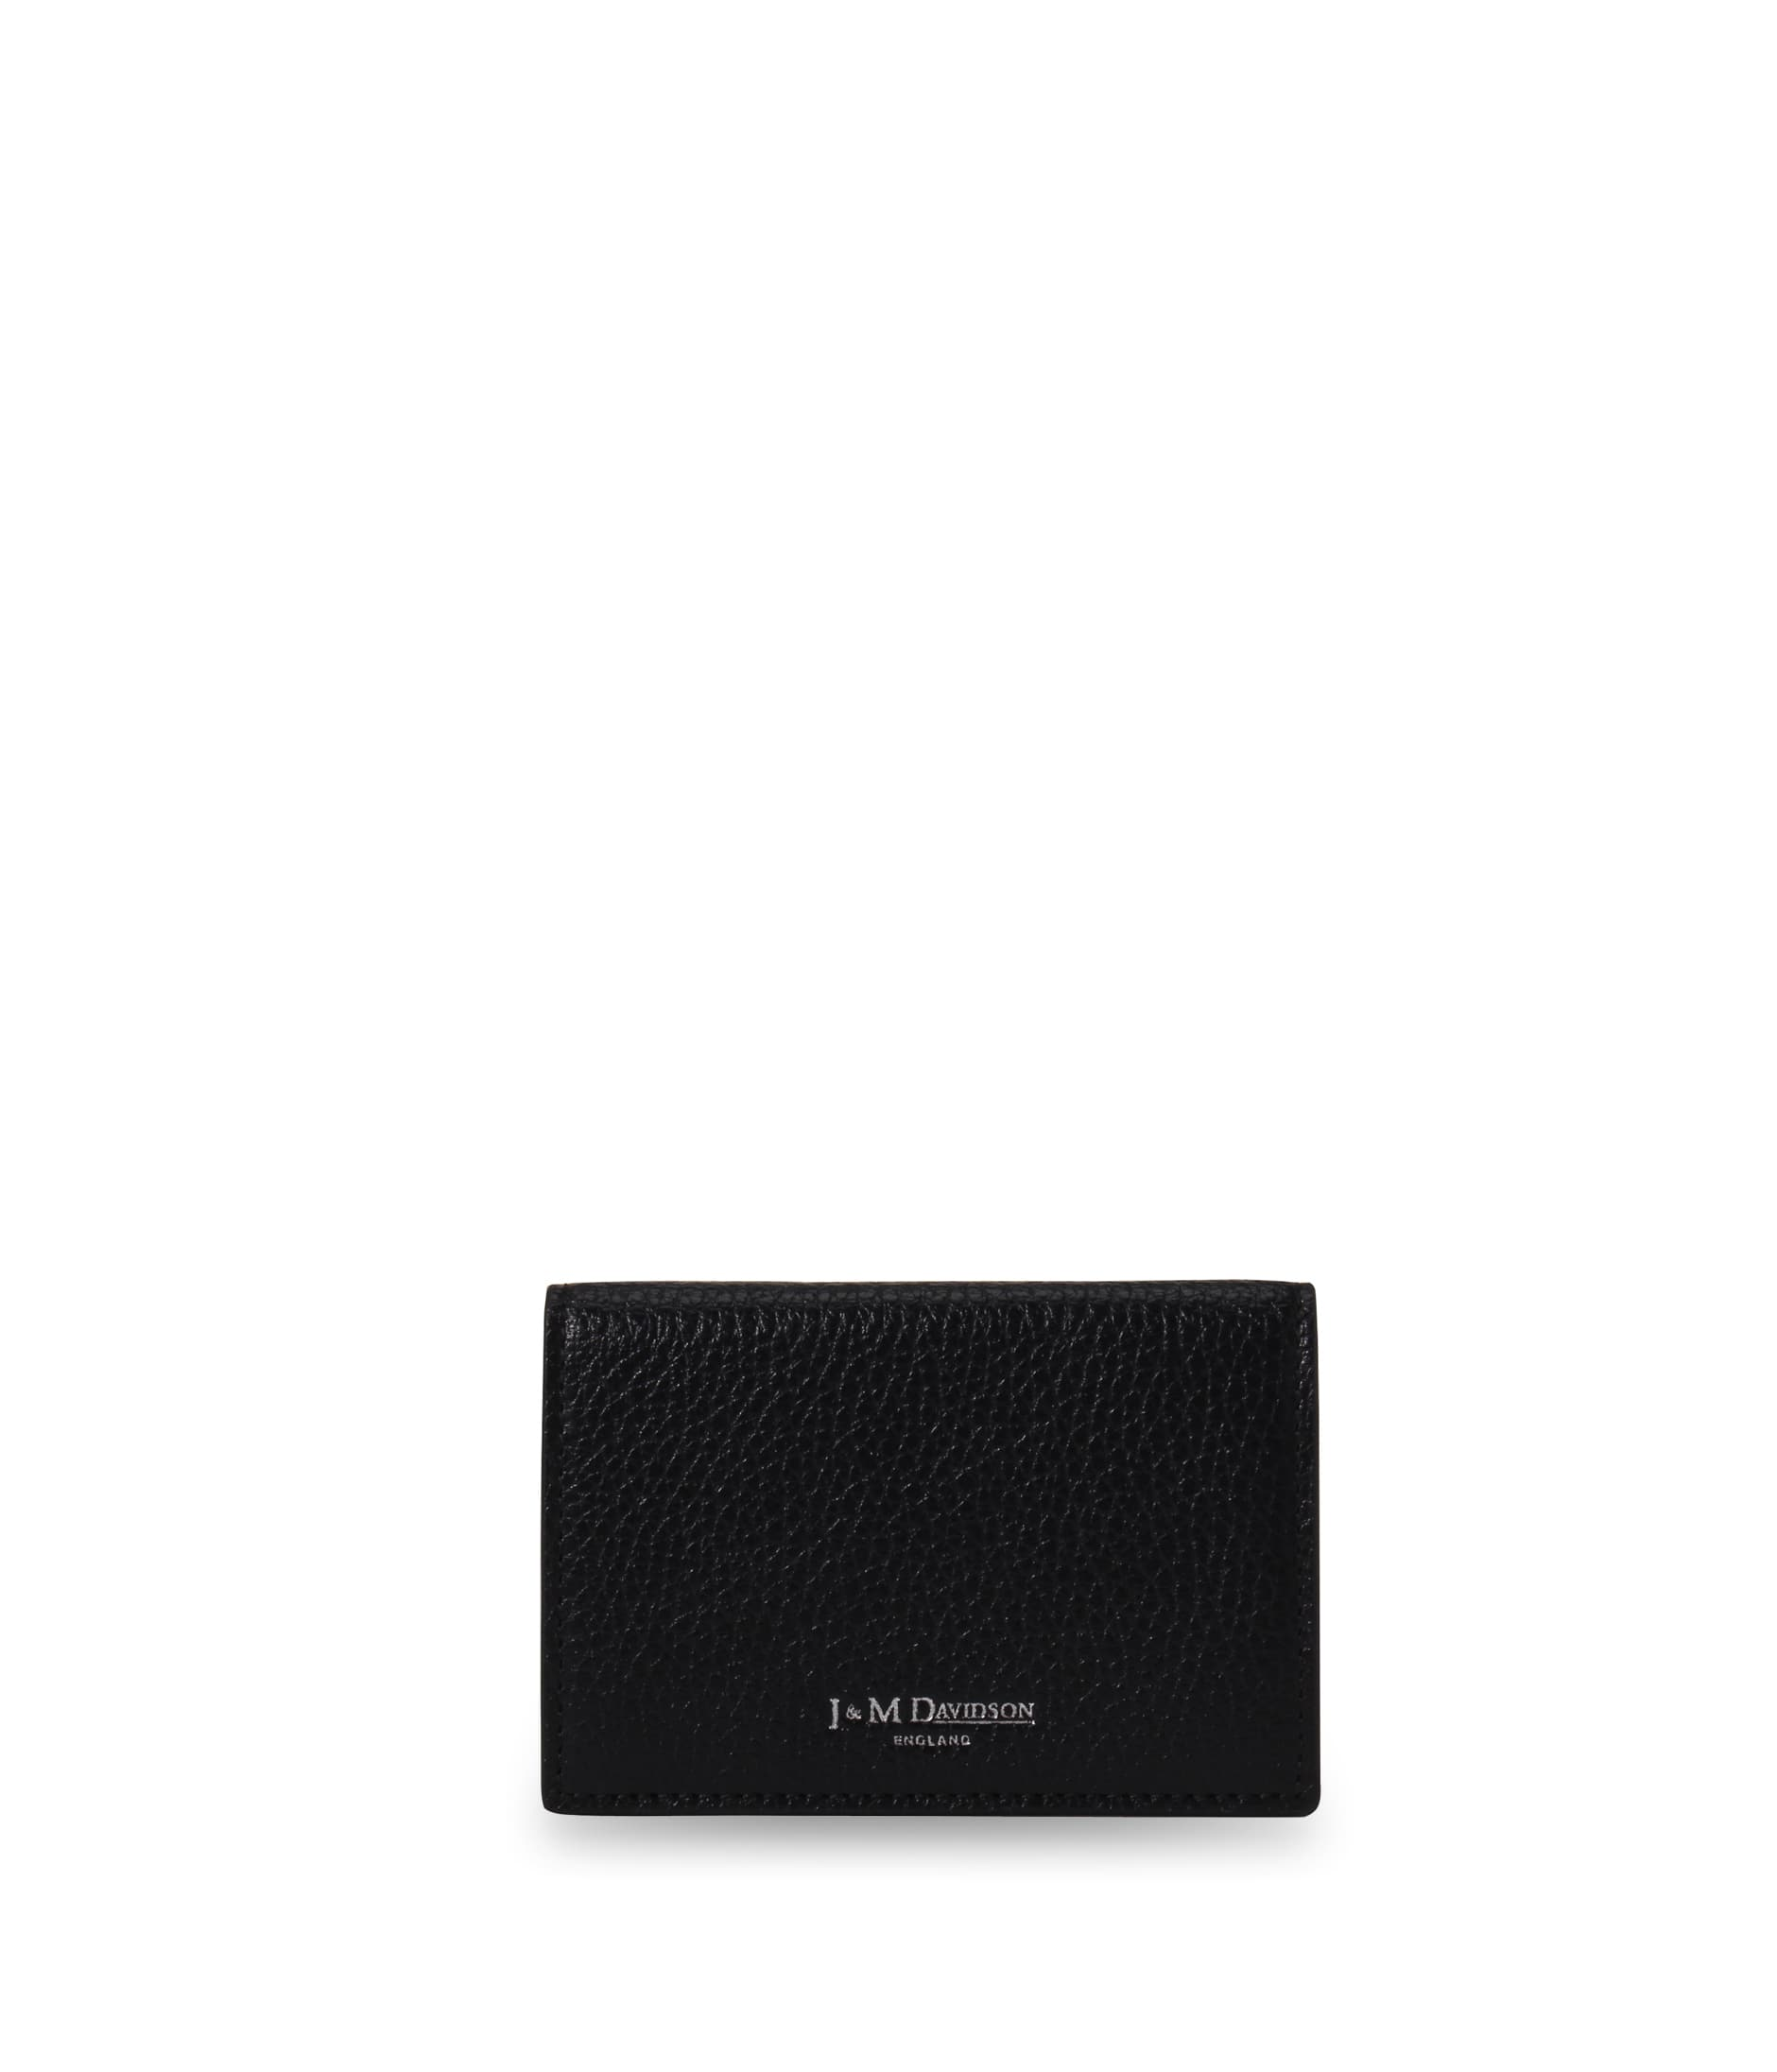 VISIT CARD HOLDER WITH STUDS 詳細画像 BLACK 2